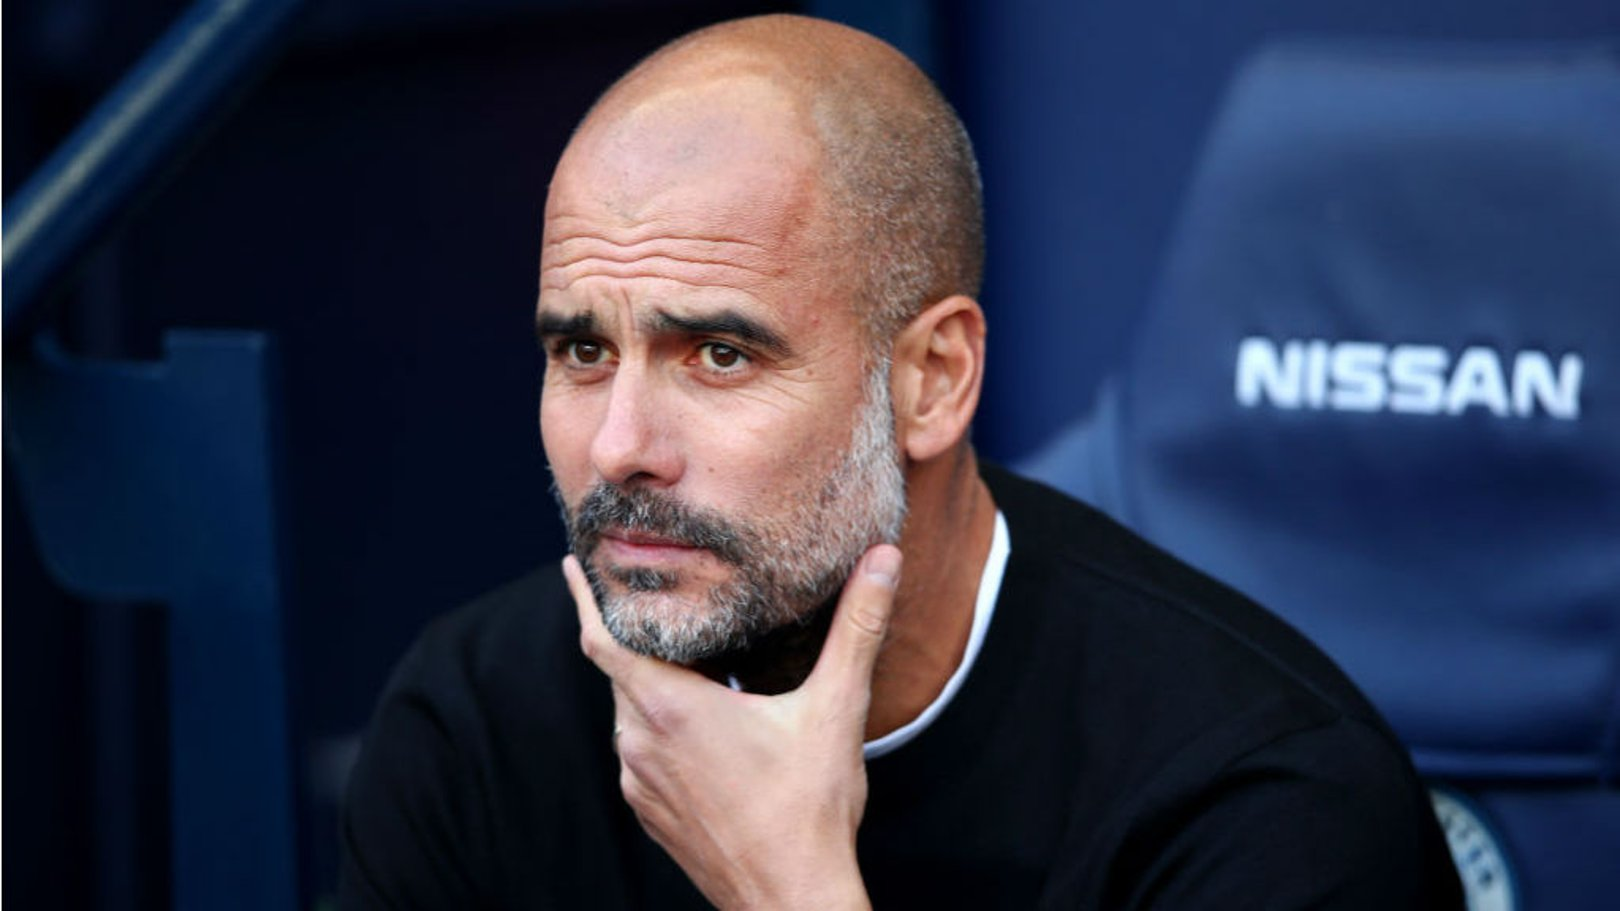 Pep Guardiola: Every game is equally important